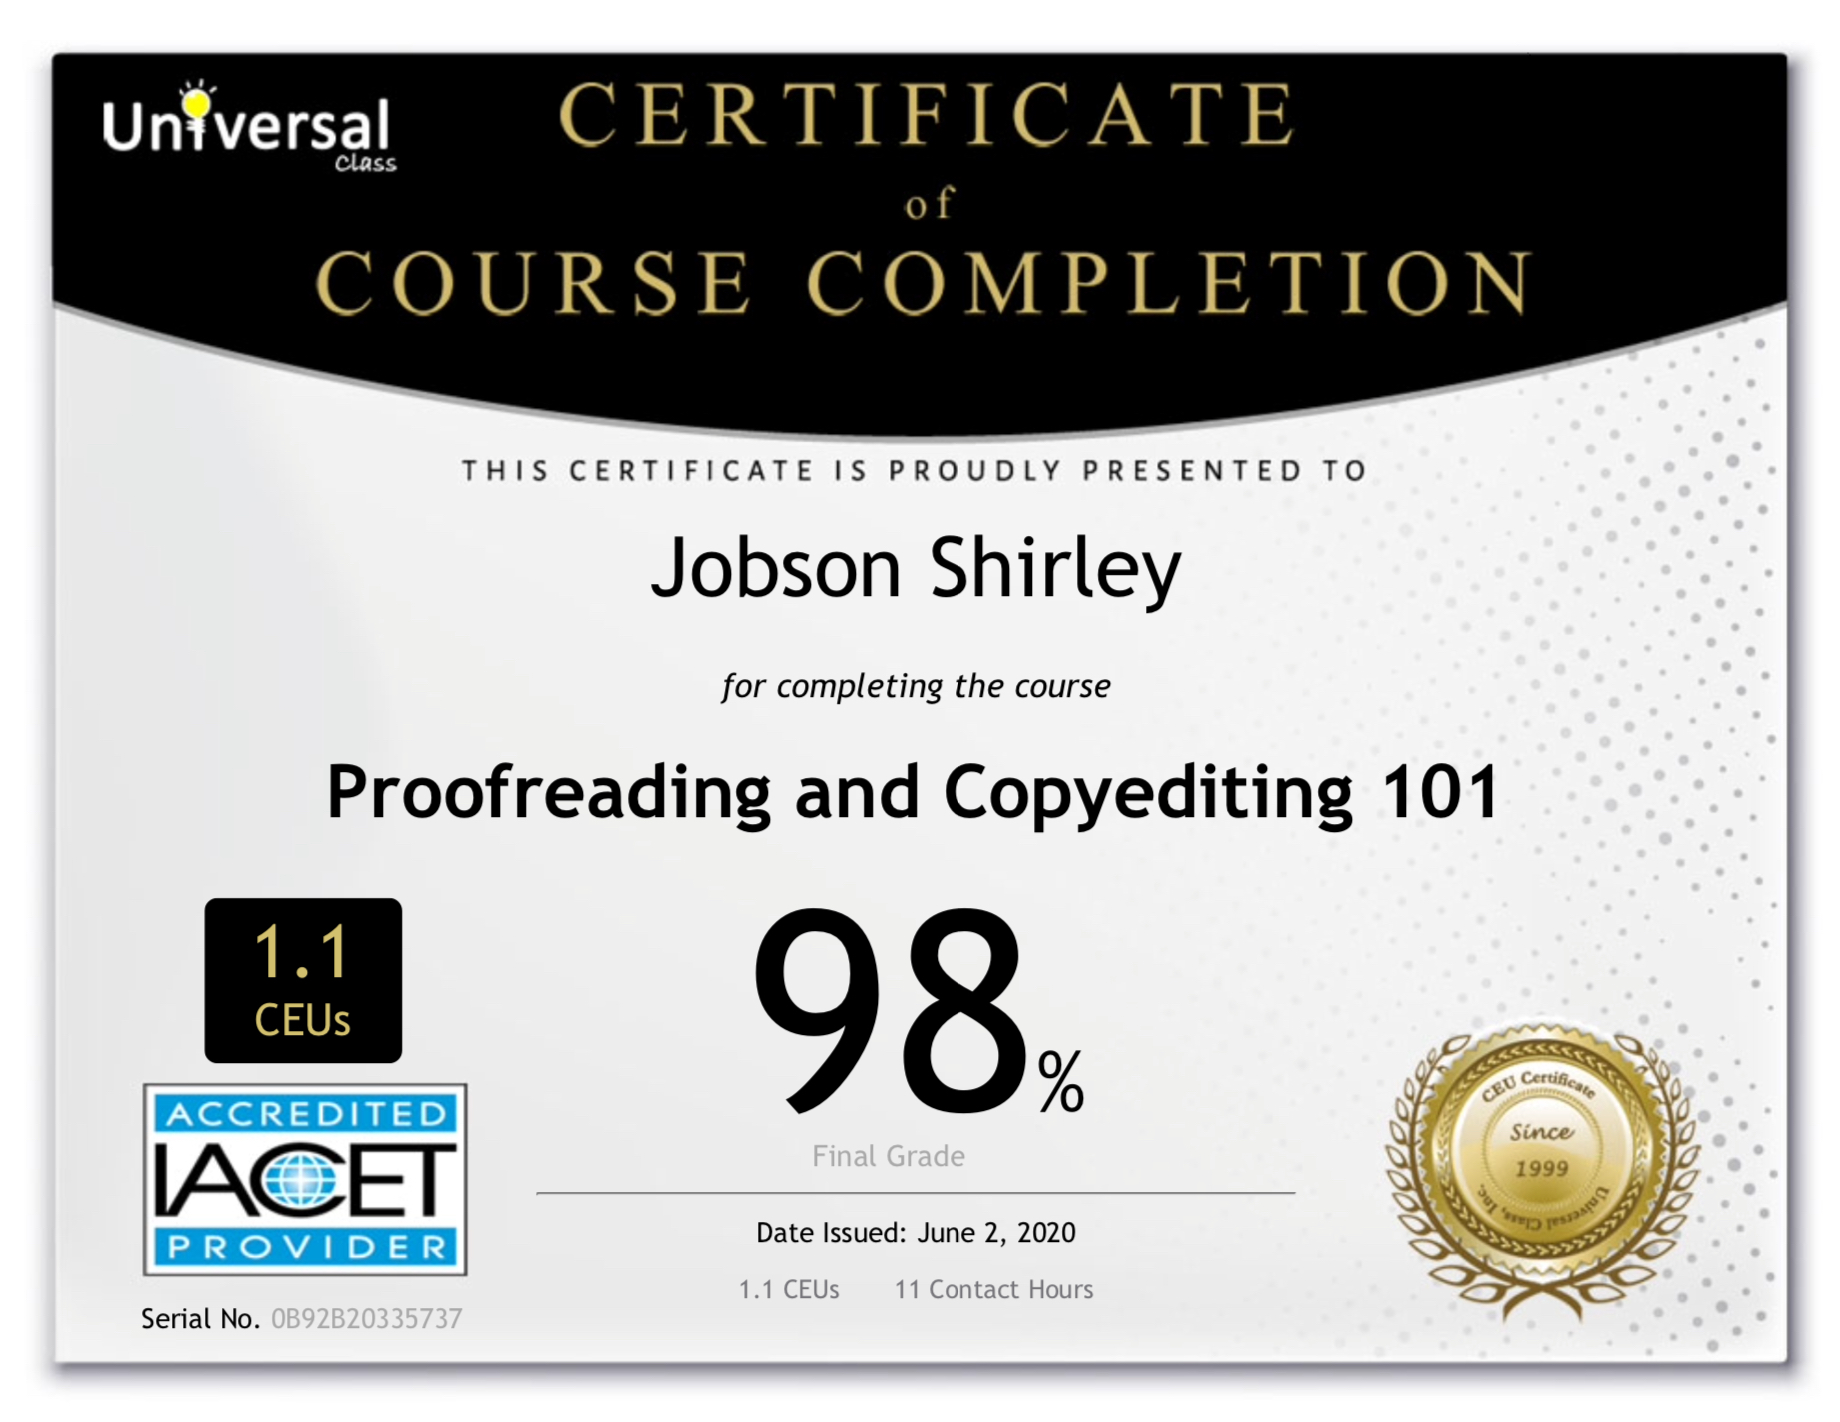 Proofreading and Copyediting Certificate - Shirley Jobson